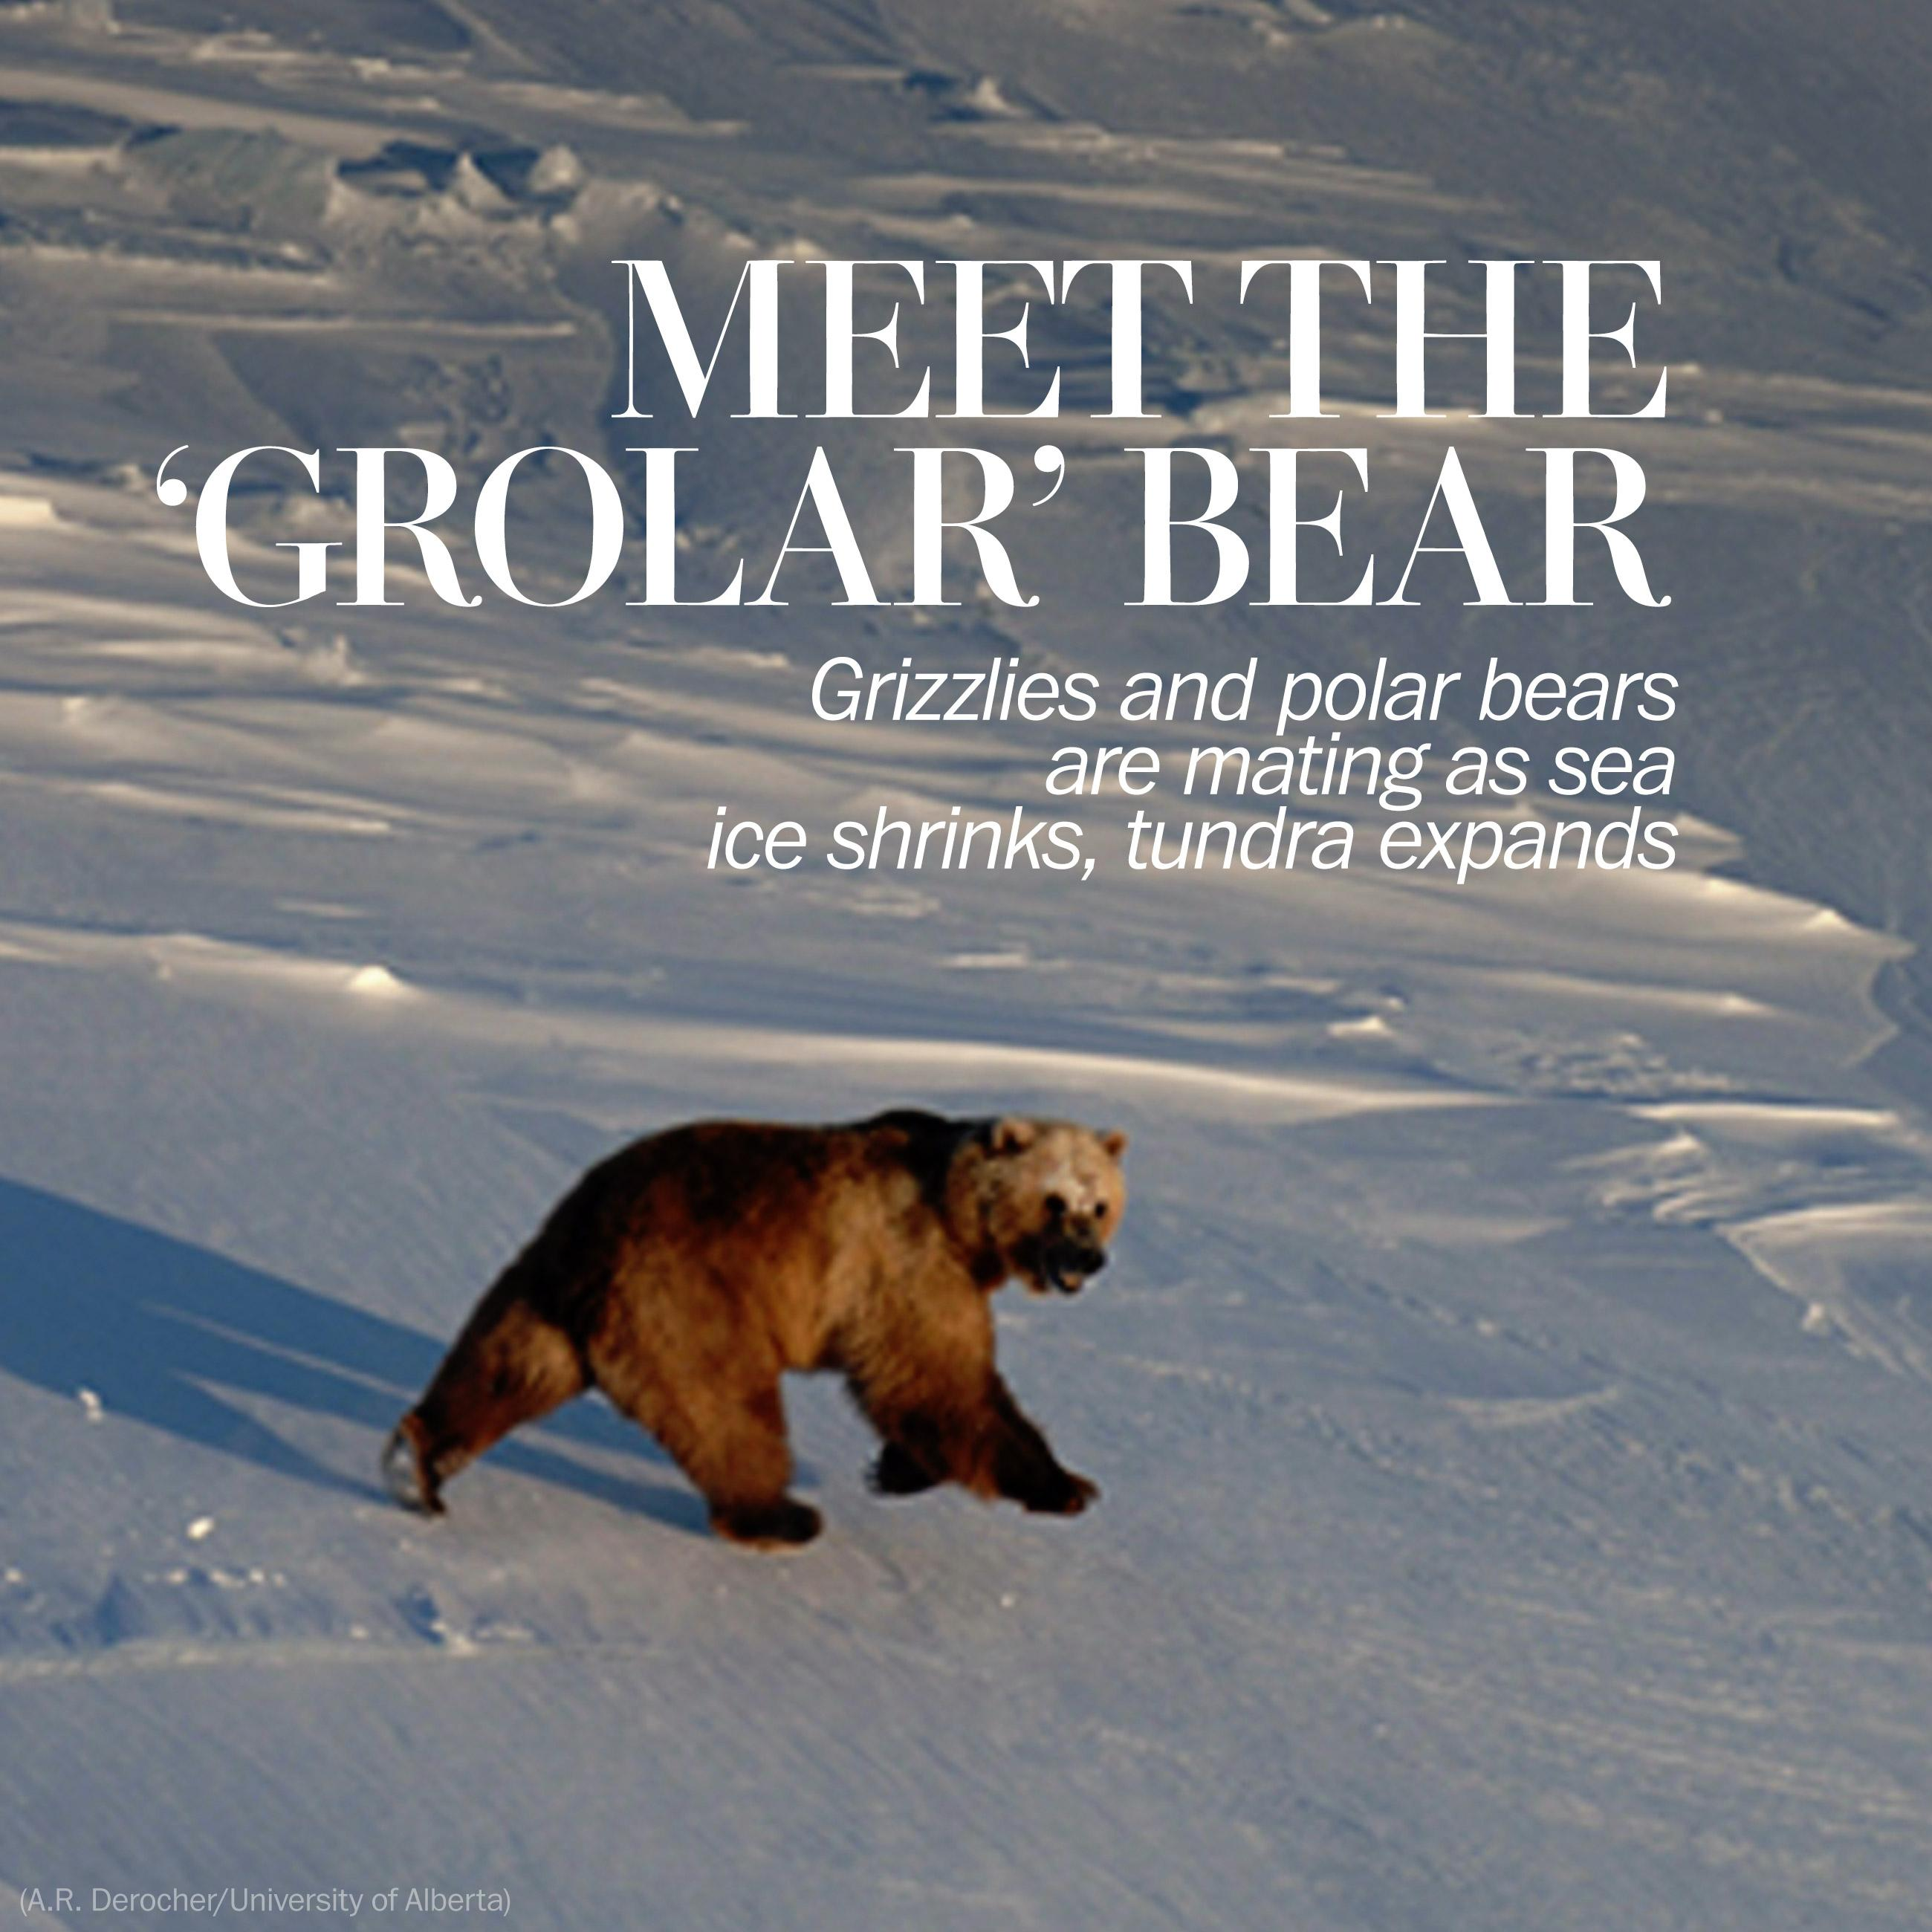 Love in the time of climate change: Grizzlies and polar bears are now mating